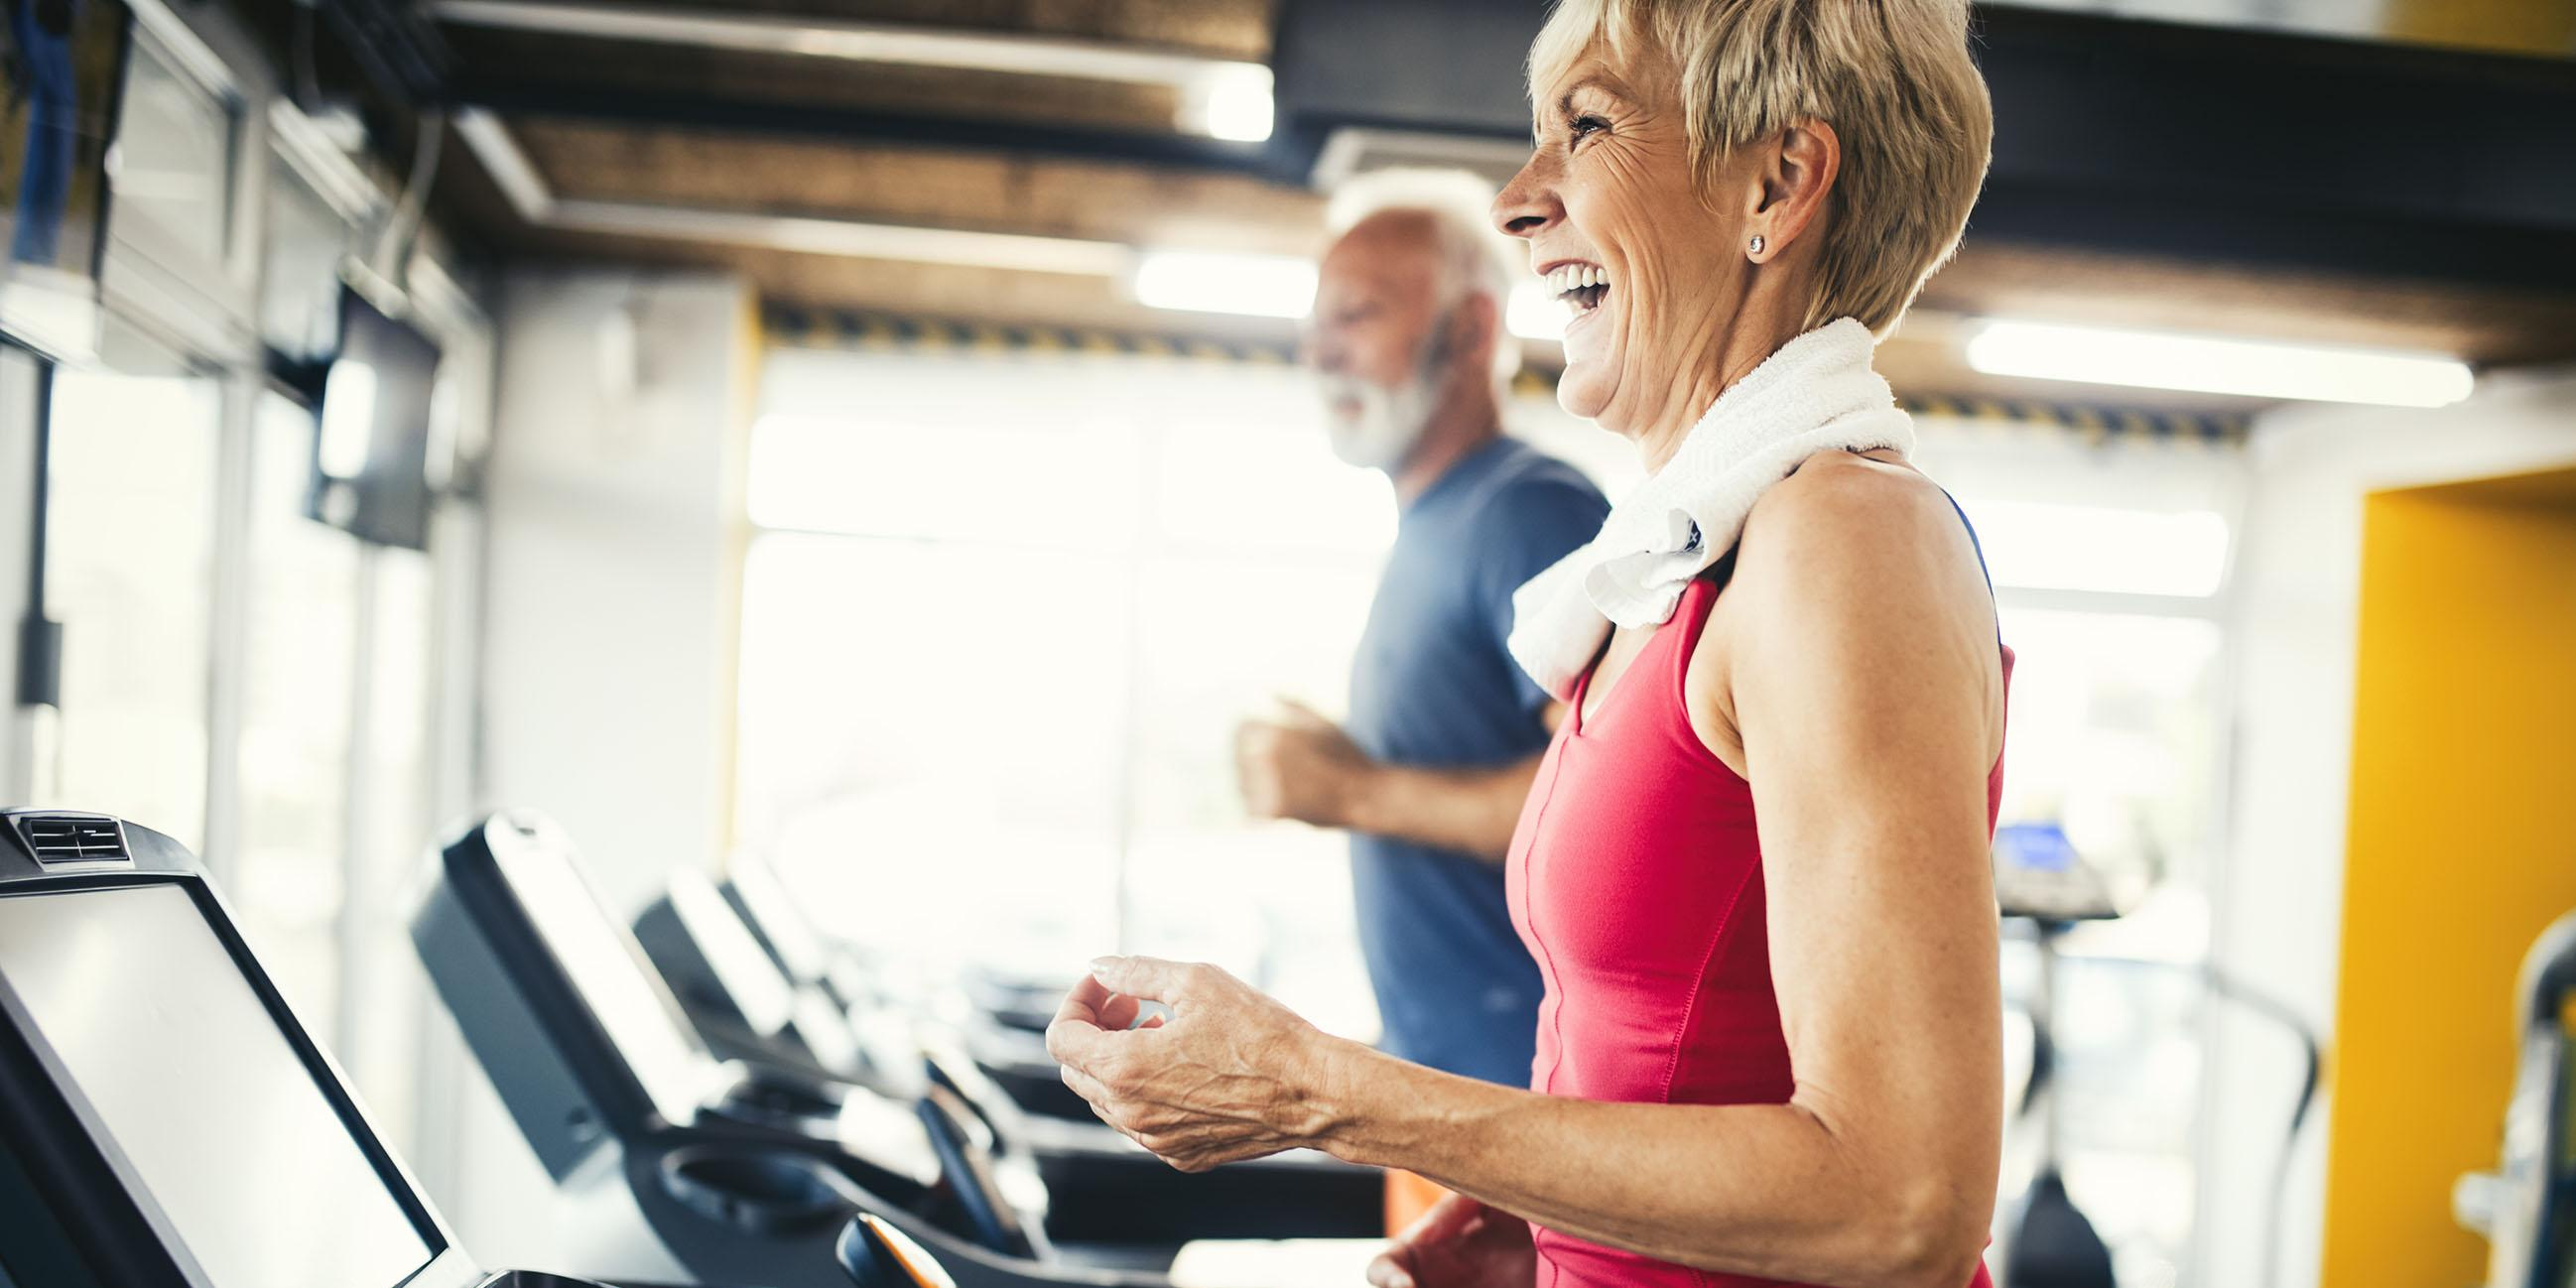 Woman smiling while running on a treadmill.